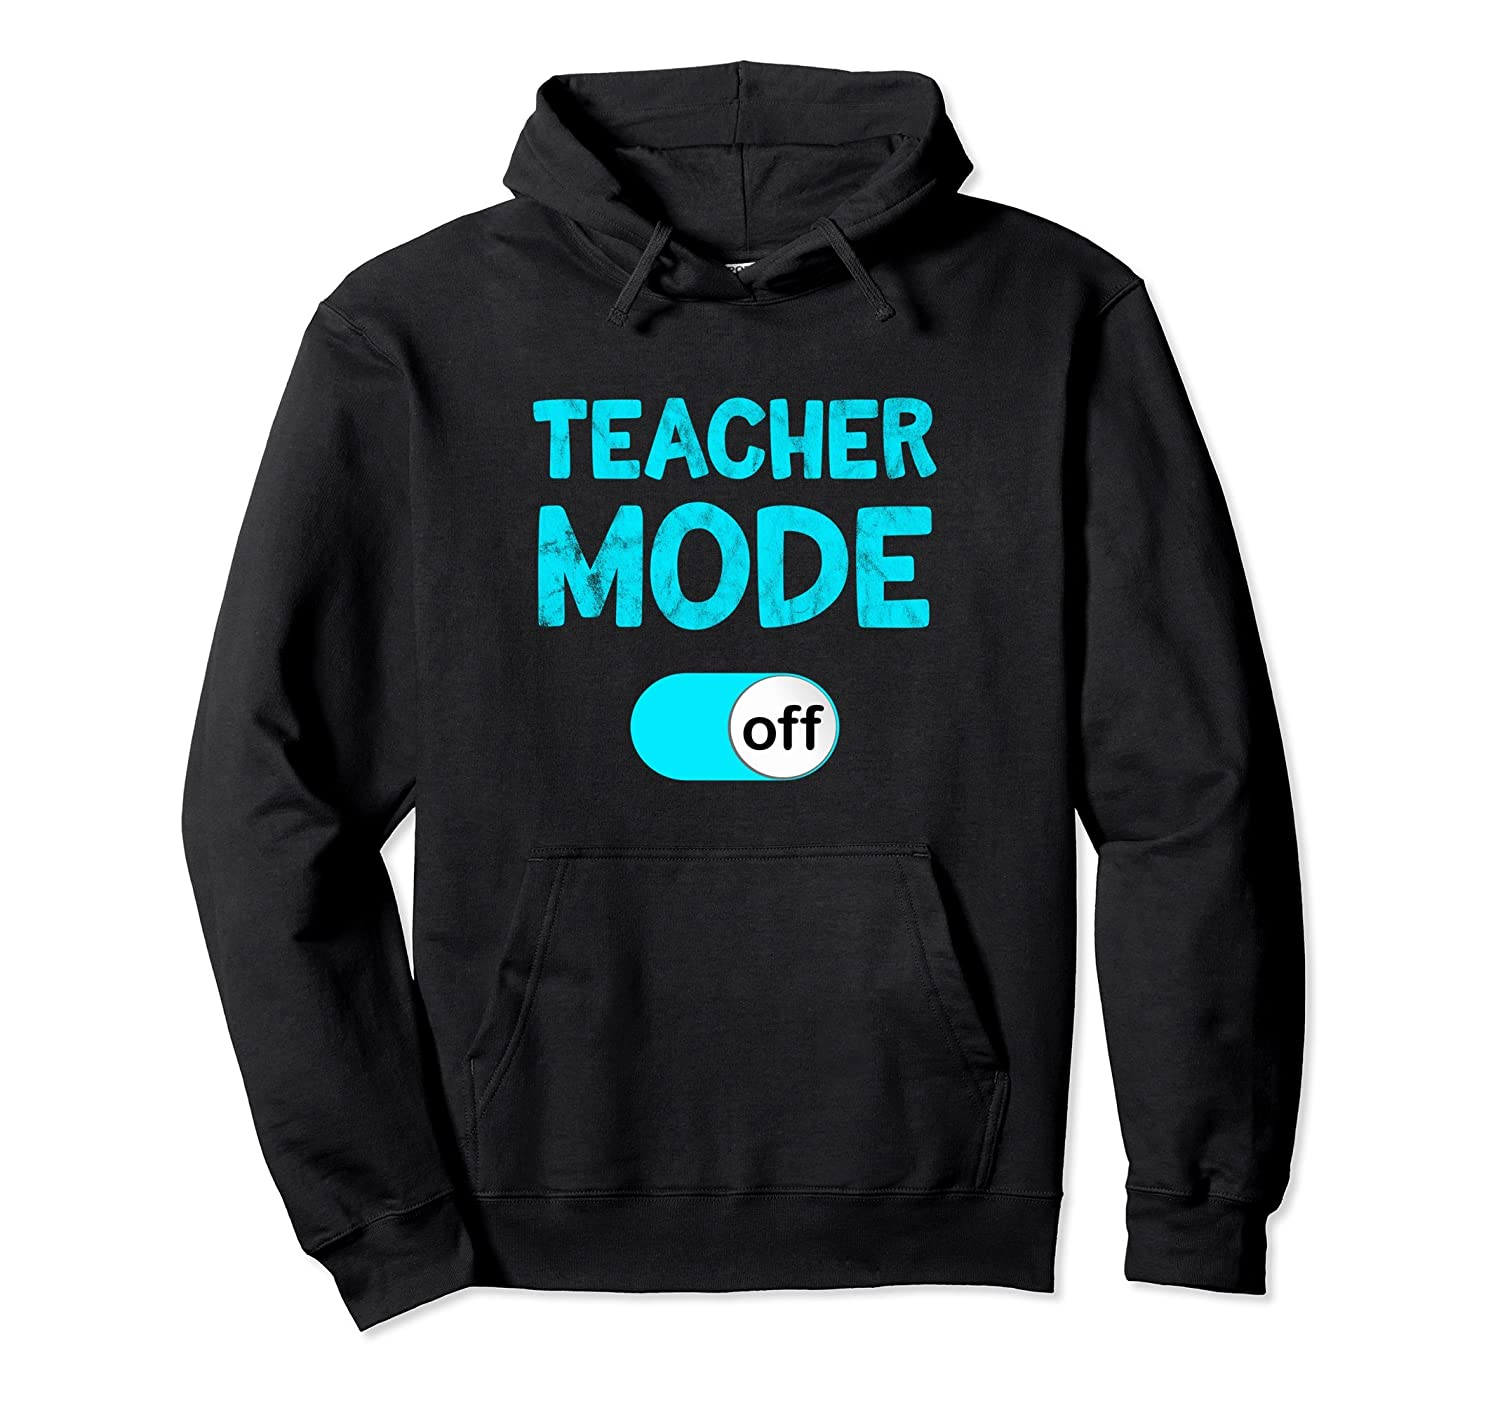 Last Day School Hoodie Teachers Funny Mode Off Pullover-mt